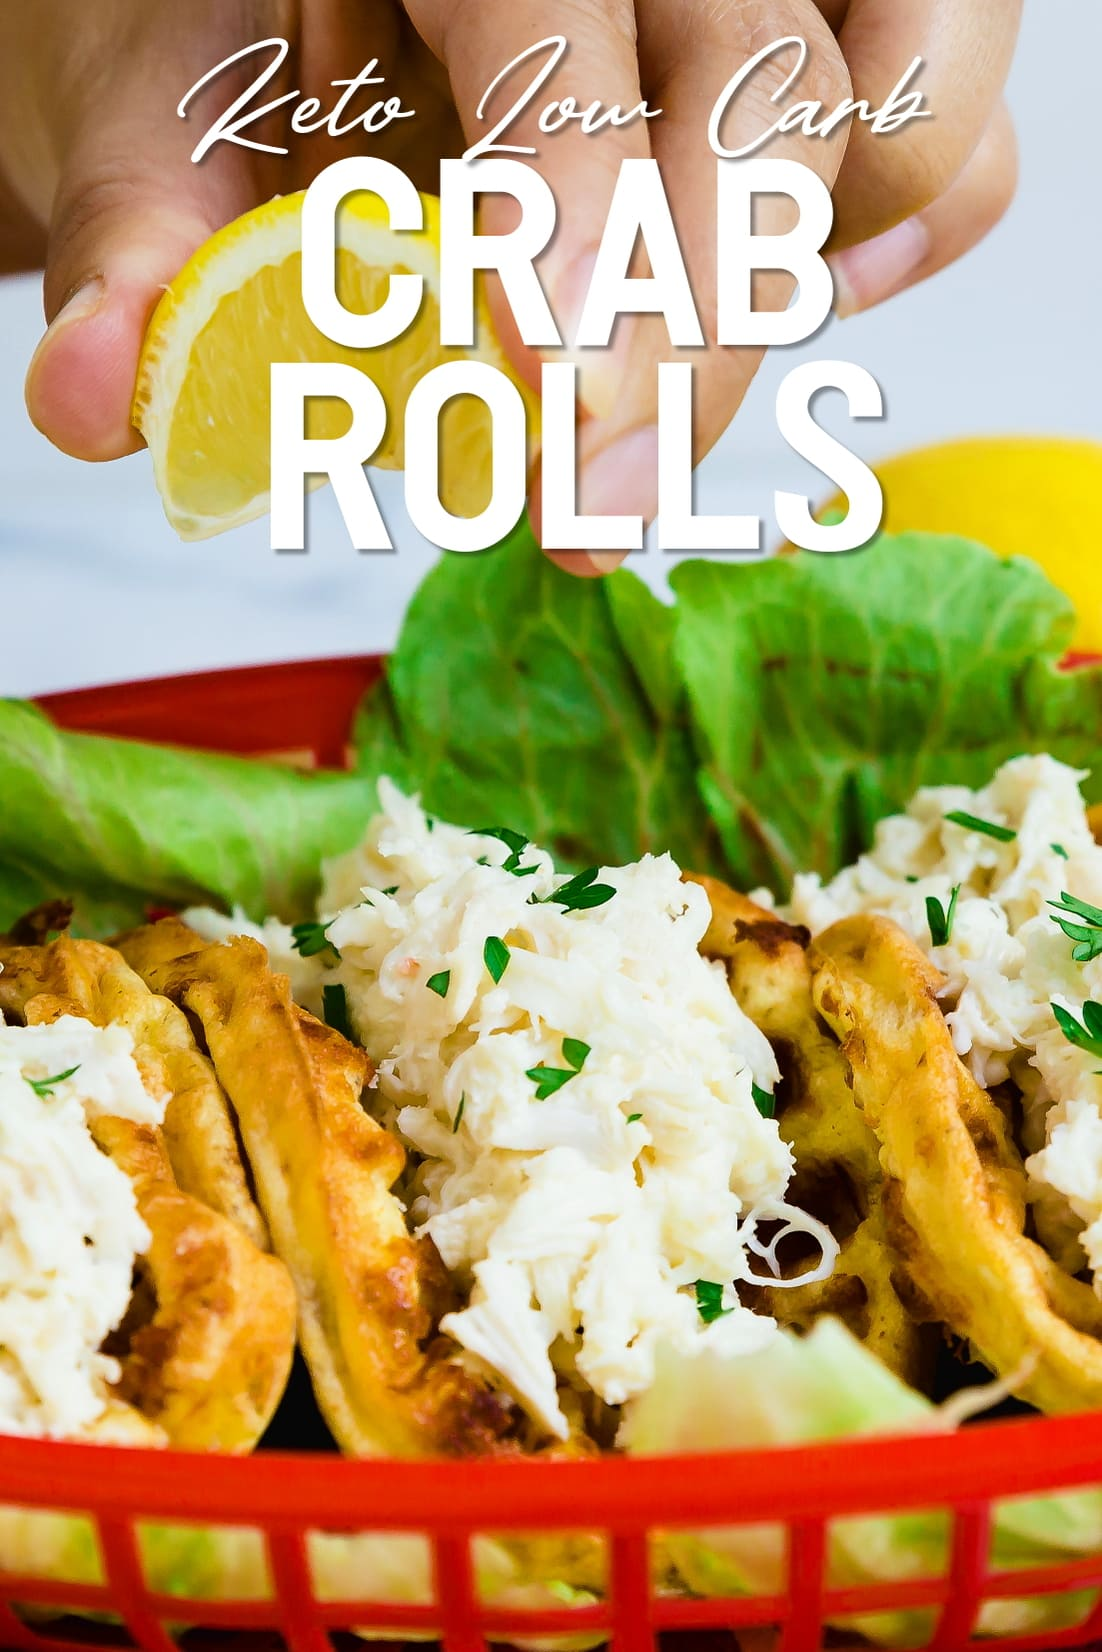 Keto Crab Roll with lemon being squeezed